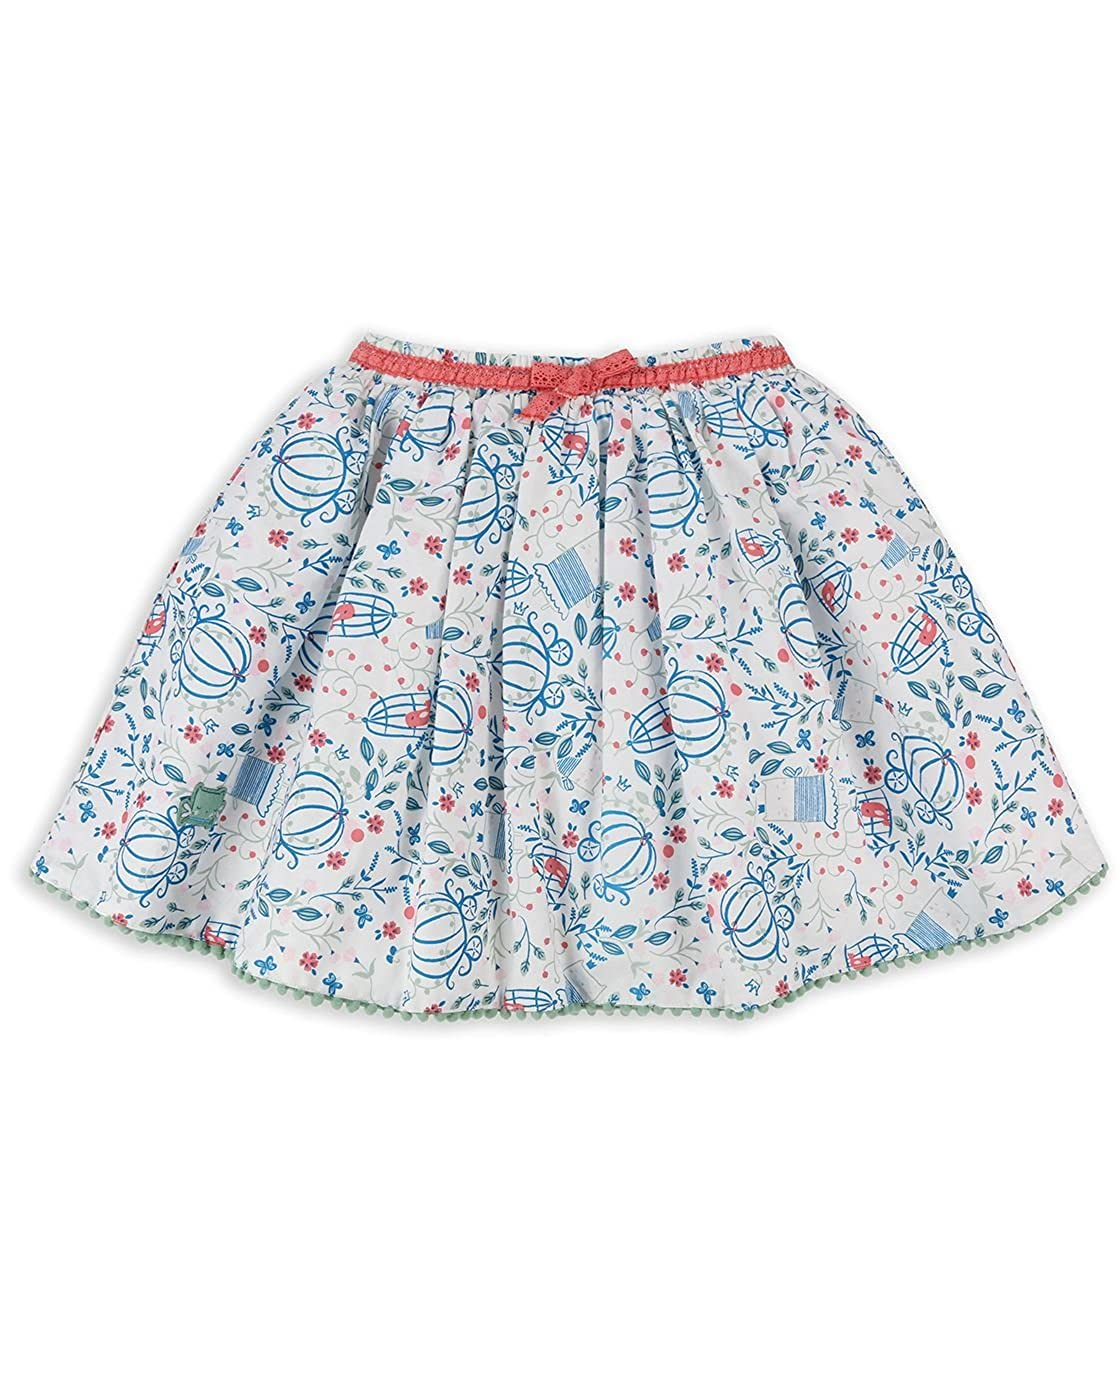 The Essential One - Baby Kids Girls Fairy Cat Floral Skirt - Cream - EOT502